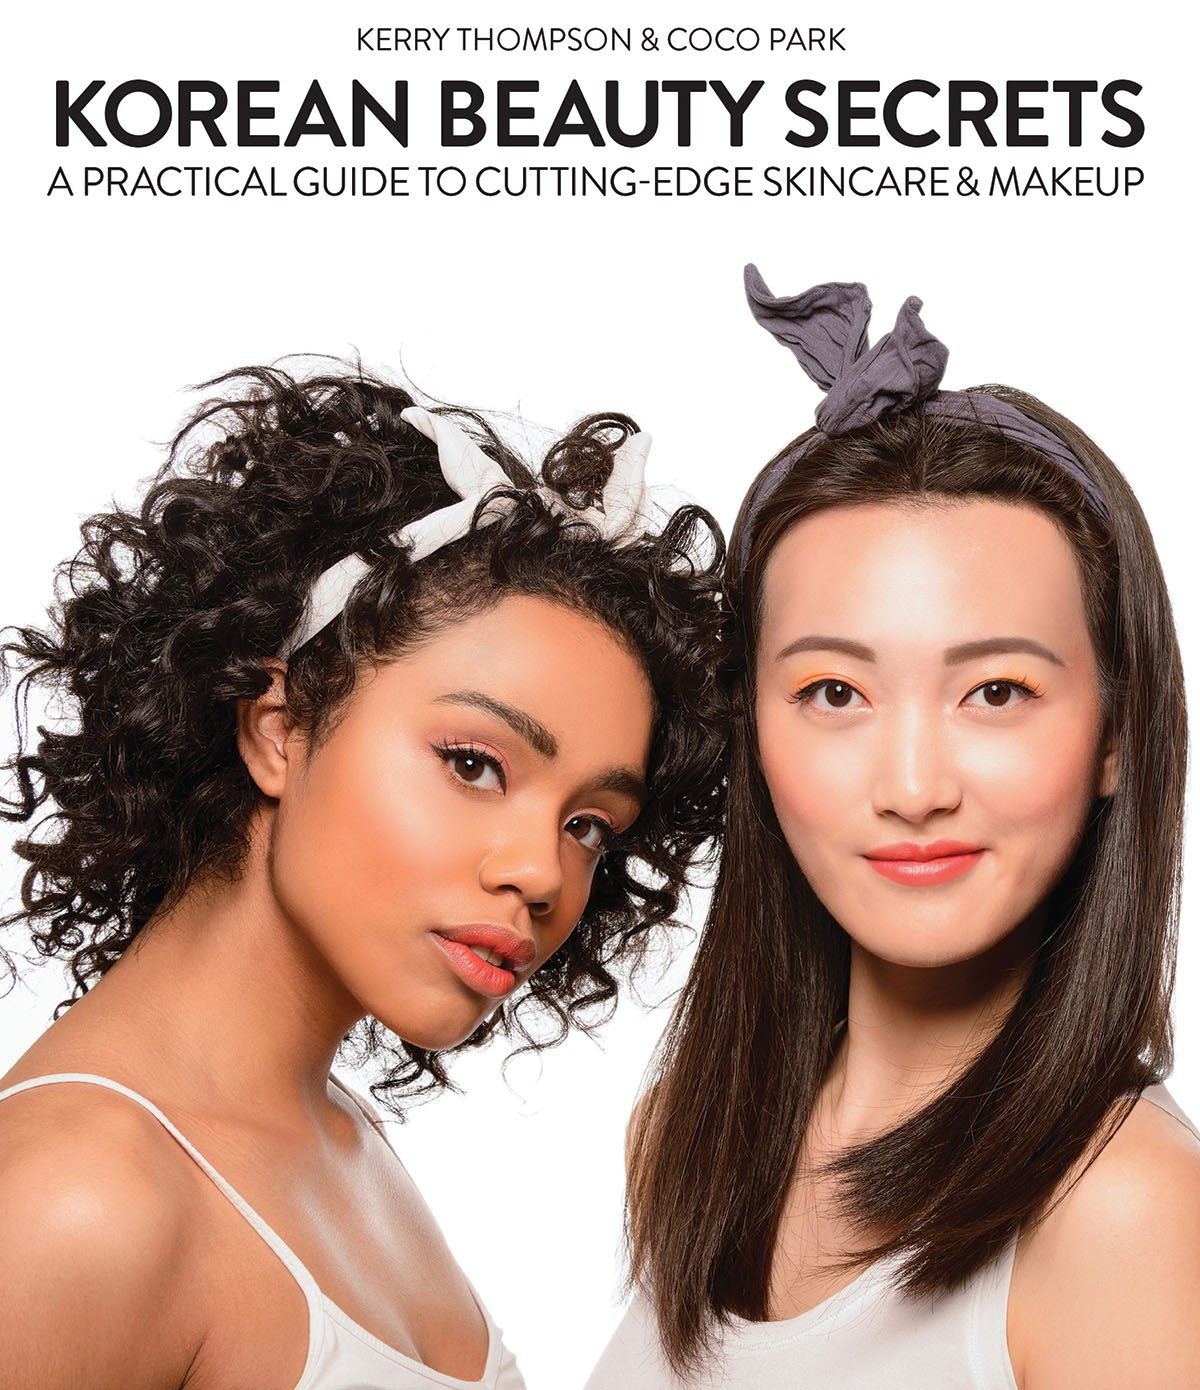 Korean Beauty Secrets: A Practical Guide to Cutting-Edge Skincare & Makeup by Skyhorse